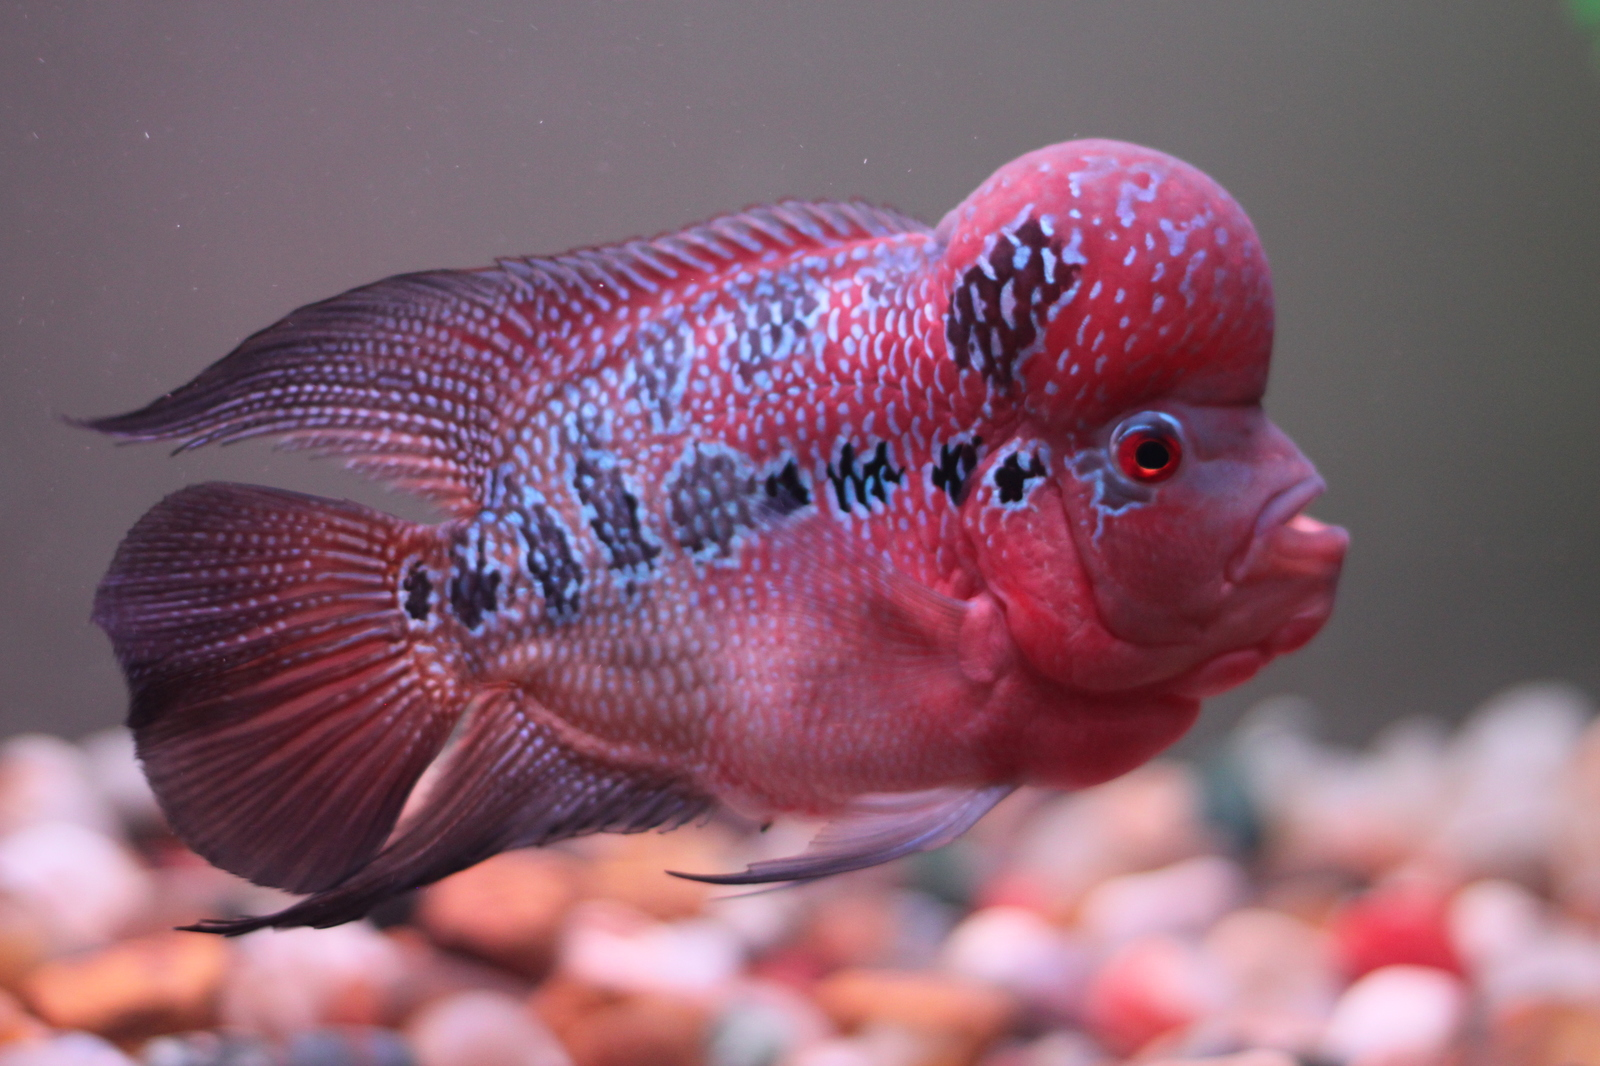 Flowerhorn Updated Pic 3 | by Korah Kuriakose